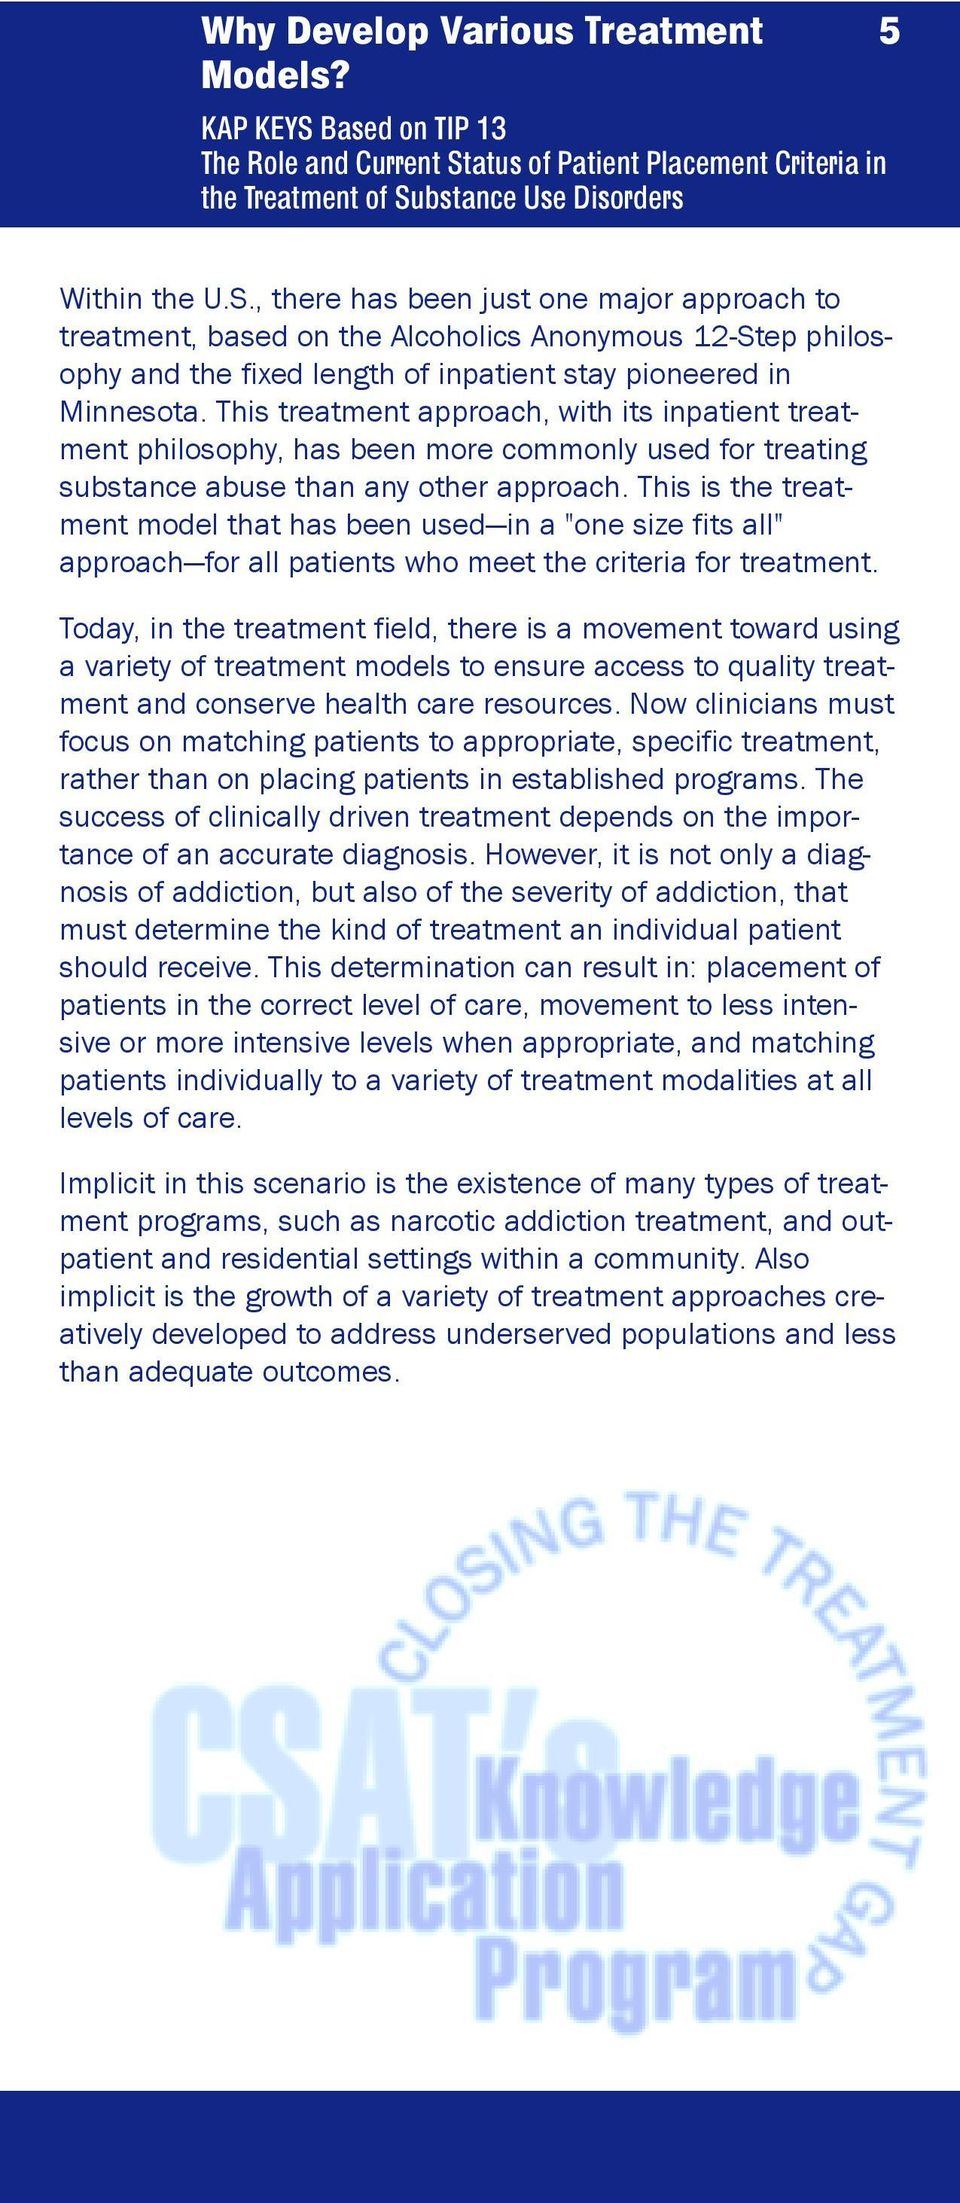 This treatment approach, with its inpatient treatment philosophy, has been more commonly used for treating substance abuse than any other approach.